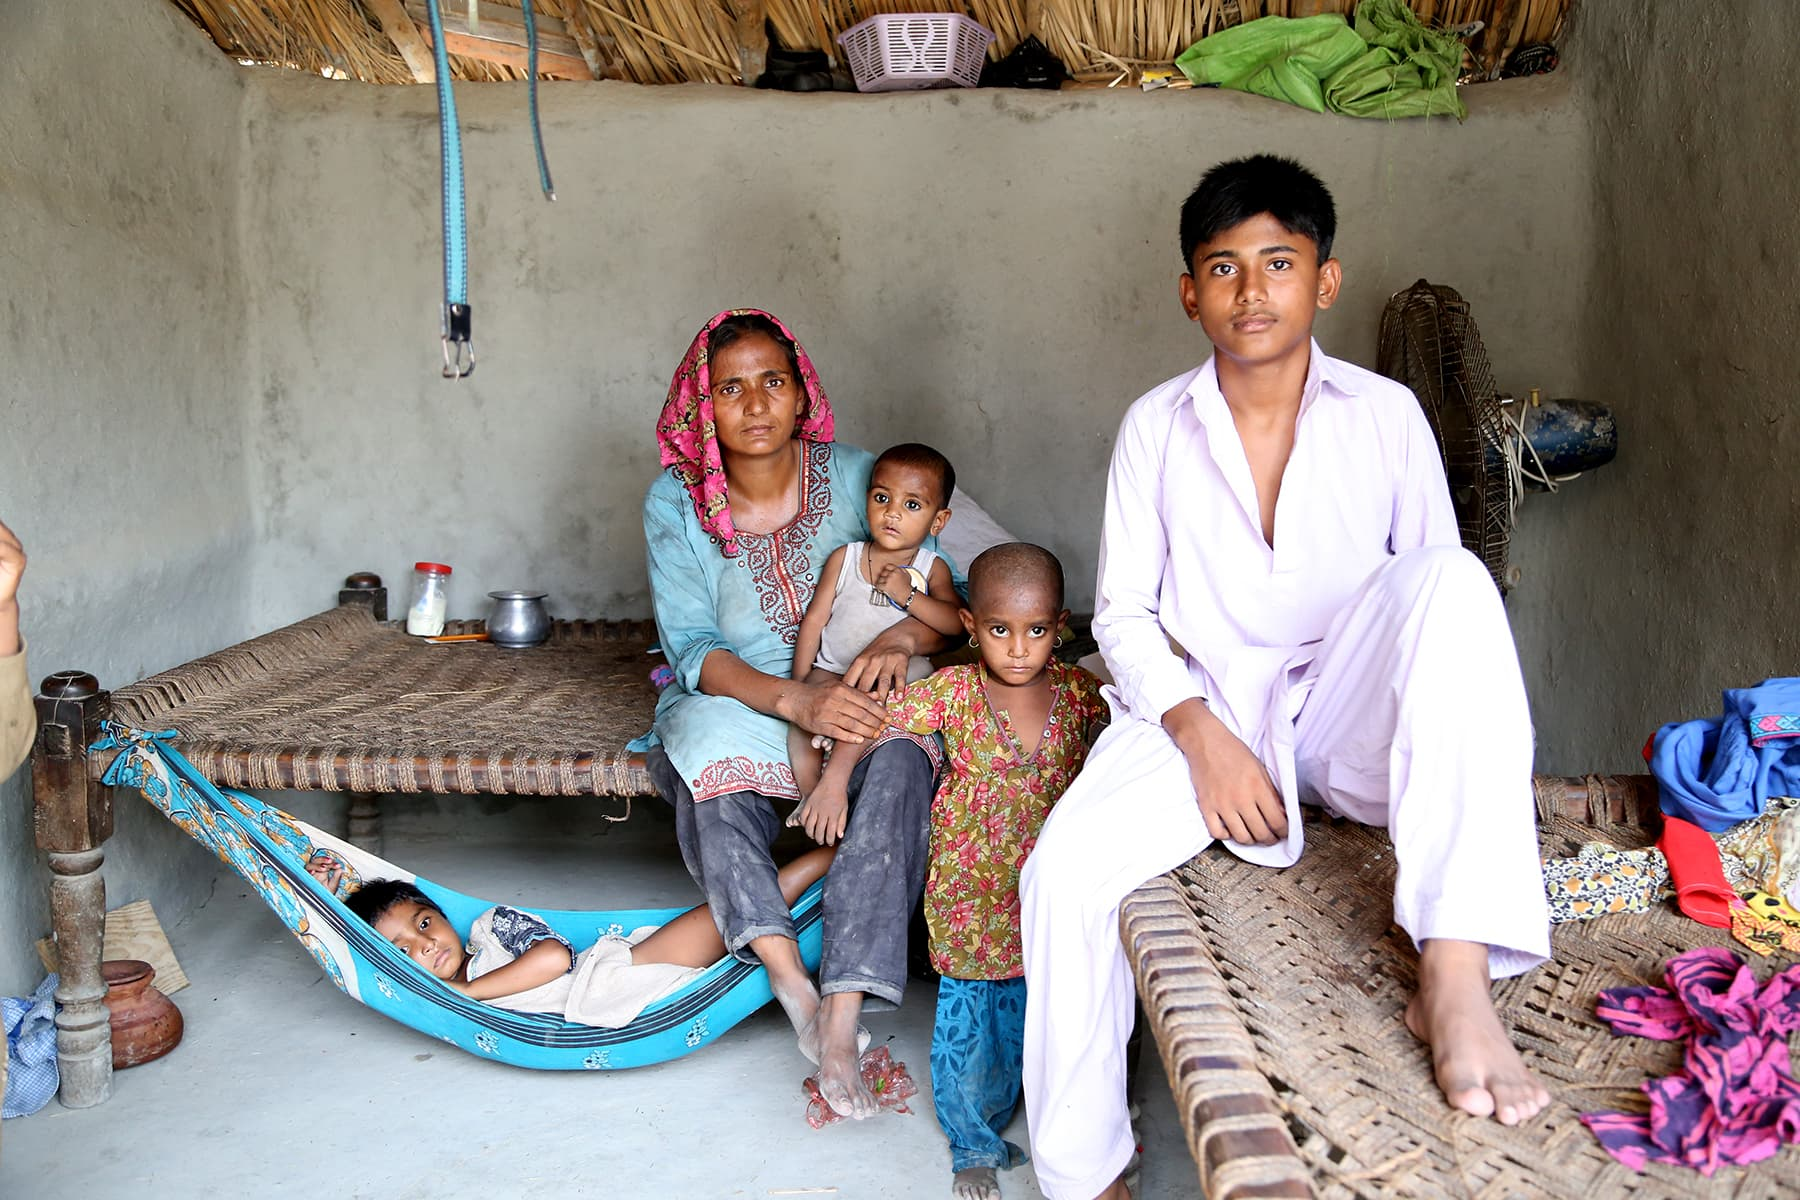 Khalil Ahmed's family pictured at their home in Gambat. - Photo by Mustafa Ilyas